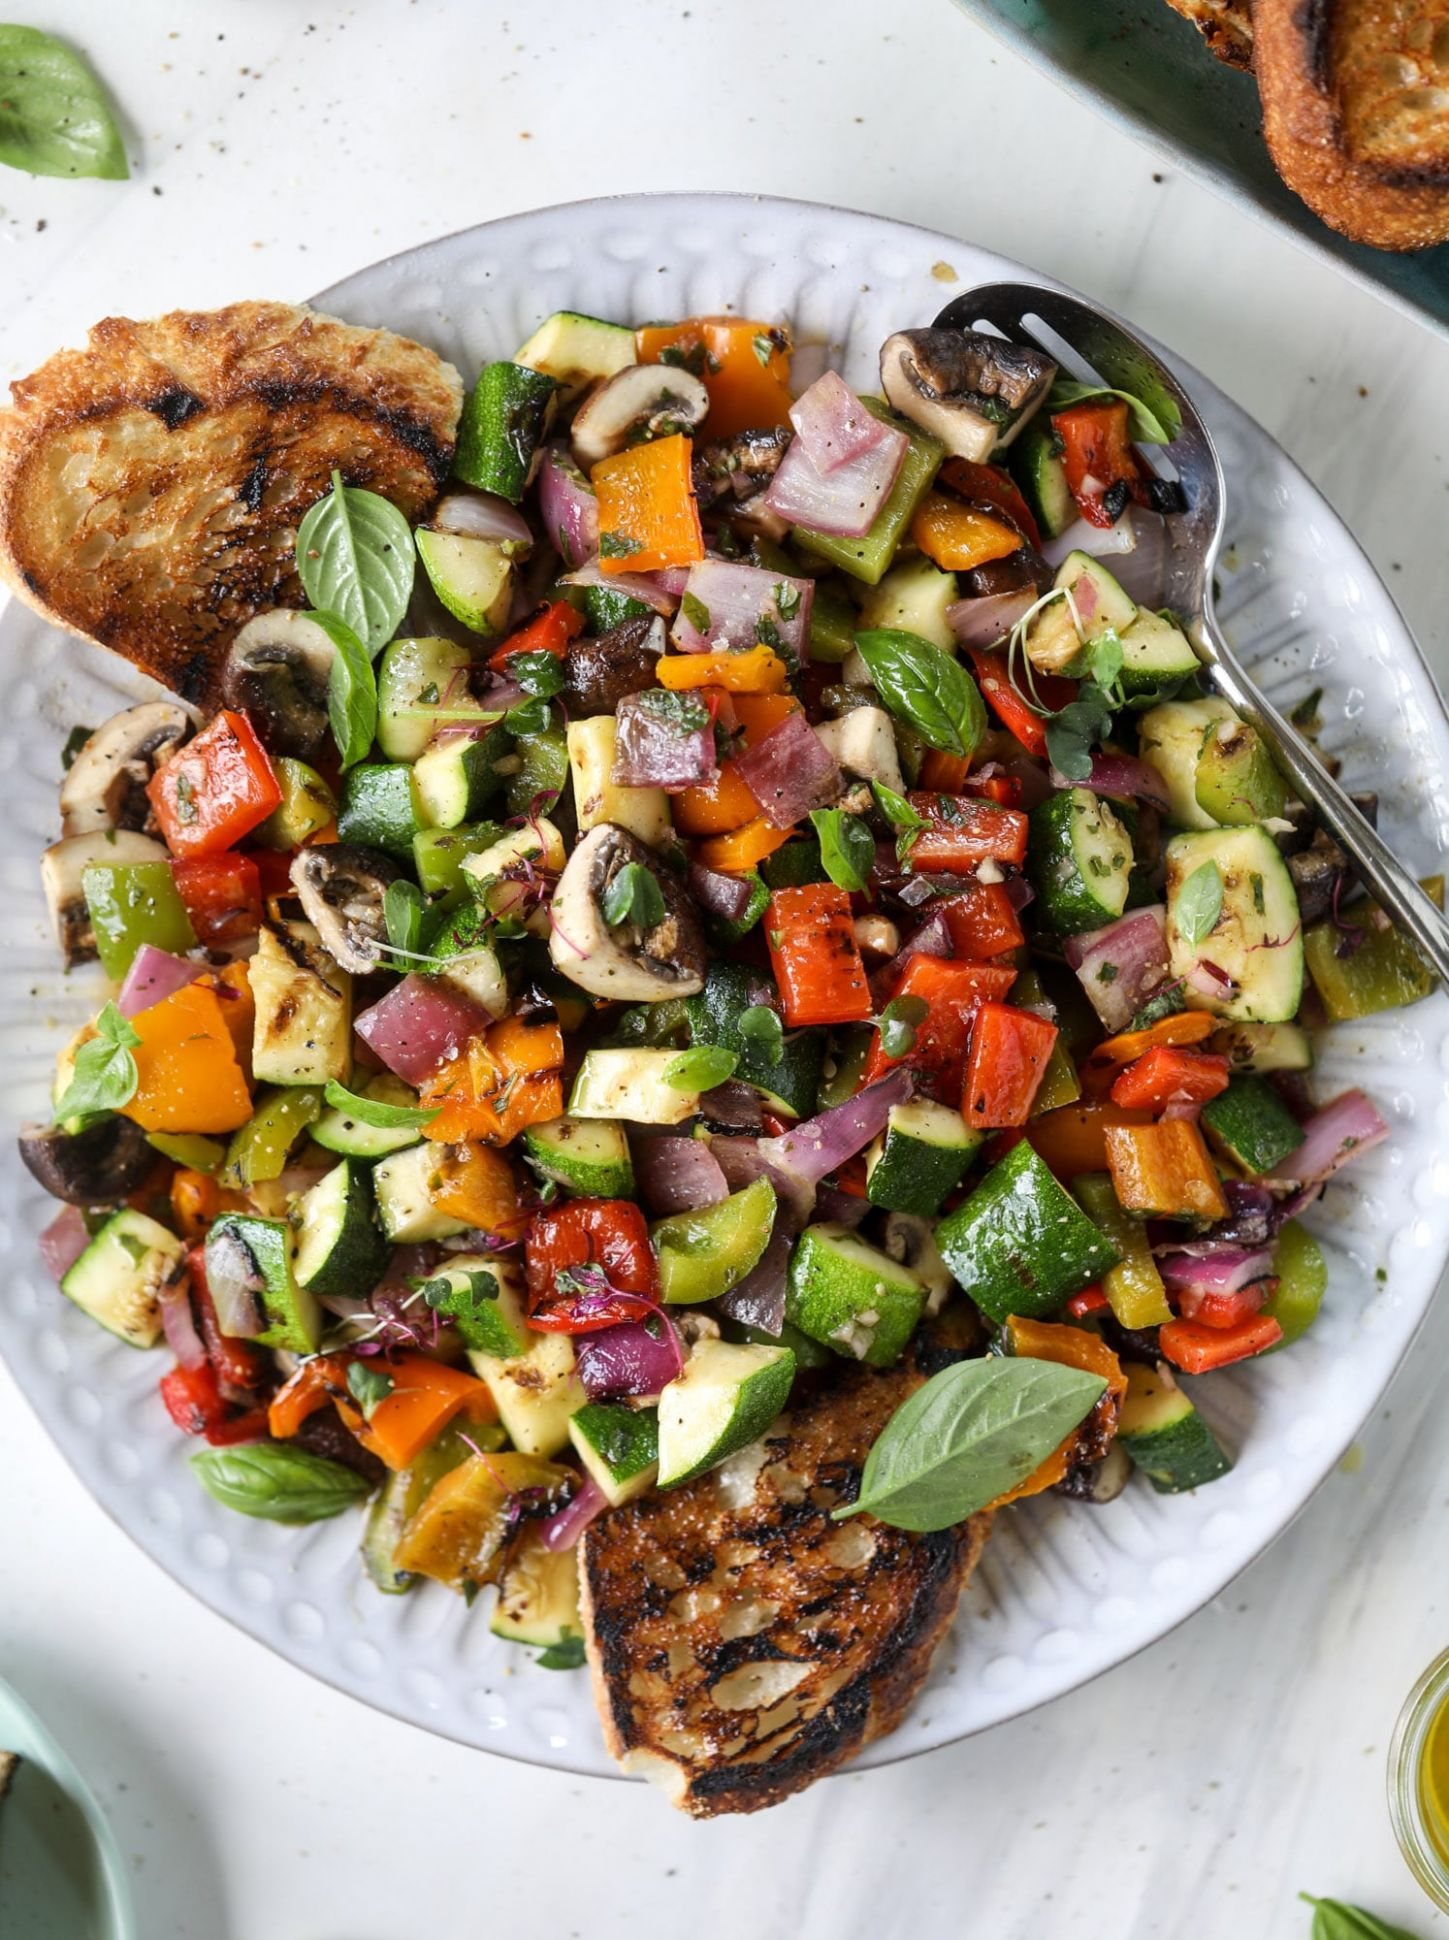 Grilled Chopped Veggies with Garlic Toast - Vegetable Recipes Grill